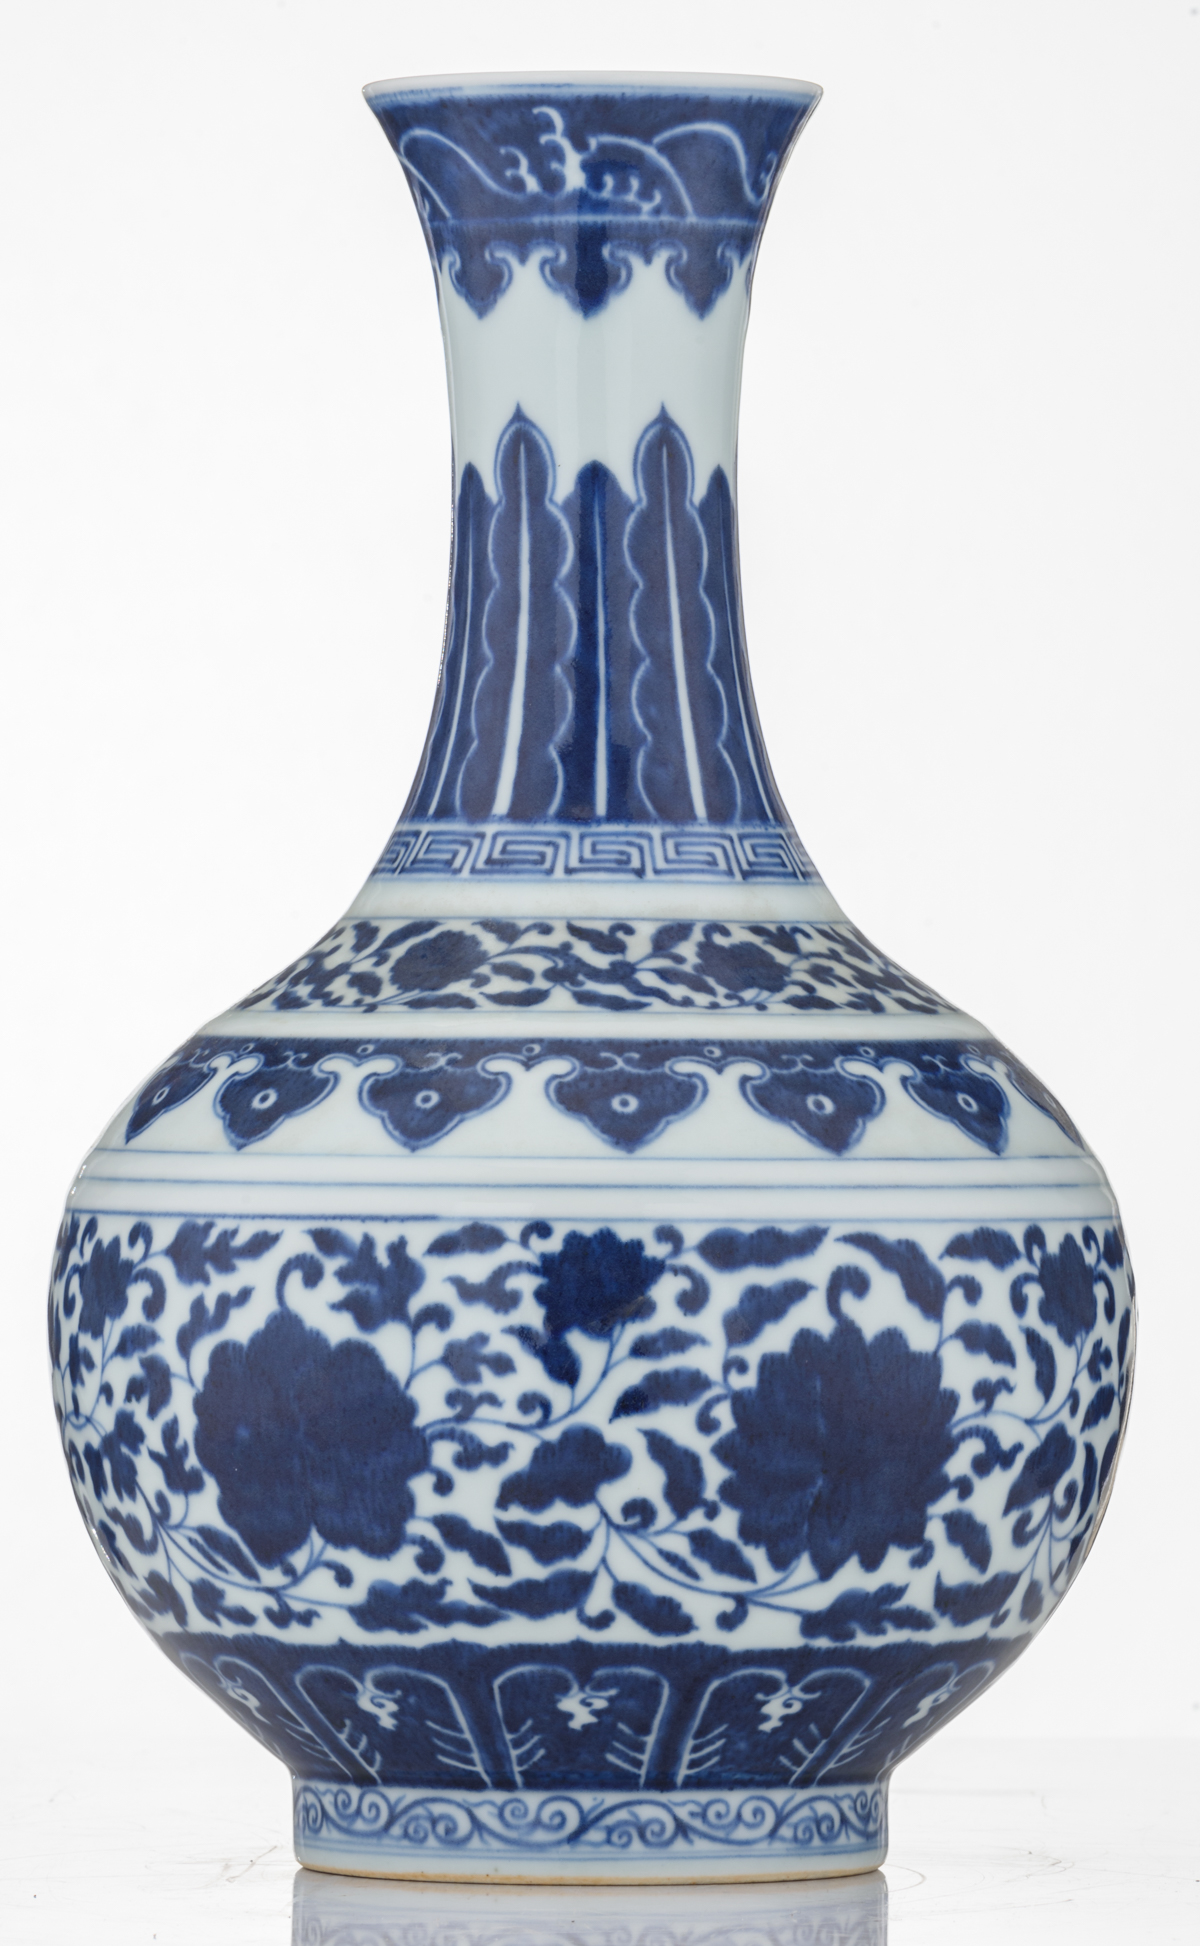 Lot 36 - A Chinese blue and white bottle vase, decorated with the design of a meandering foliate scroll, with